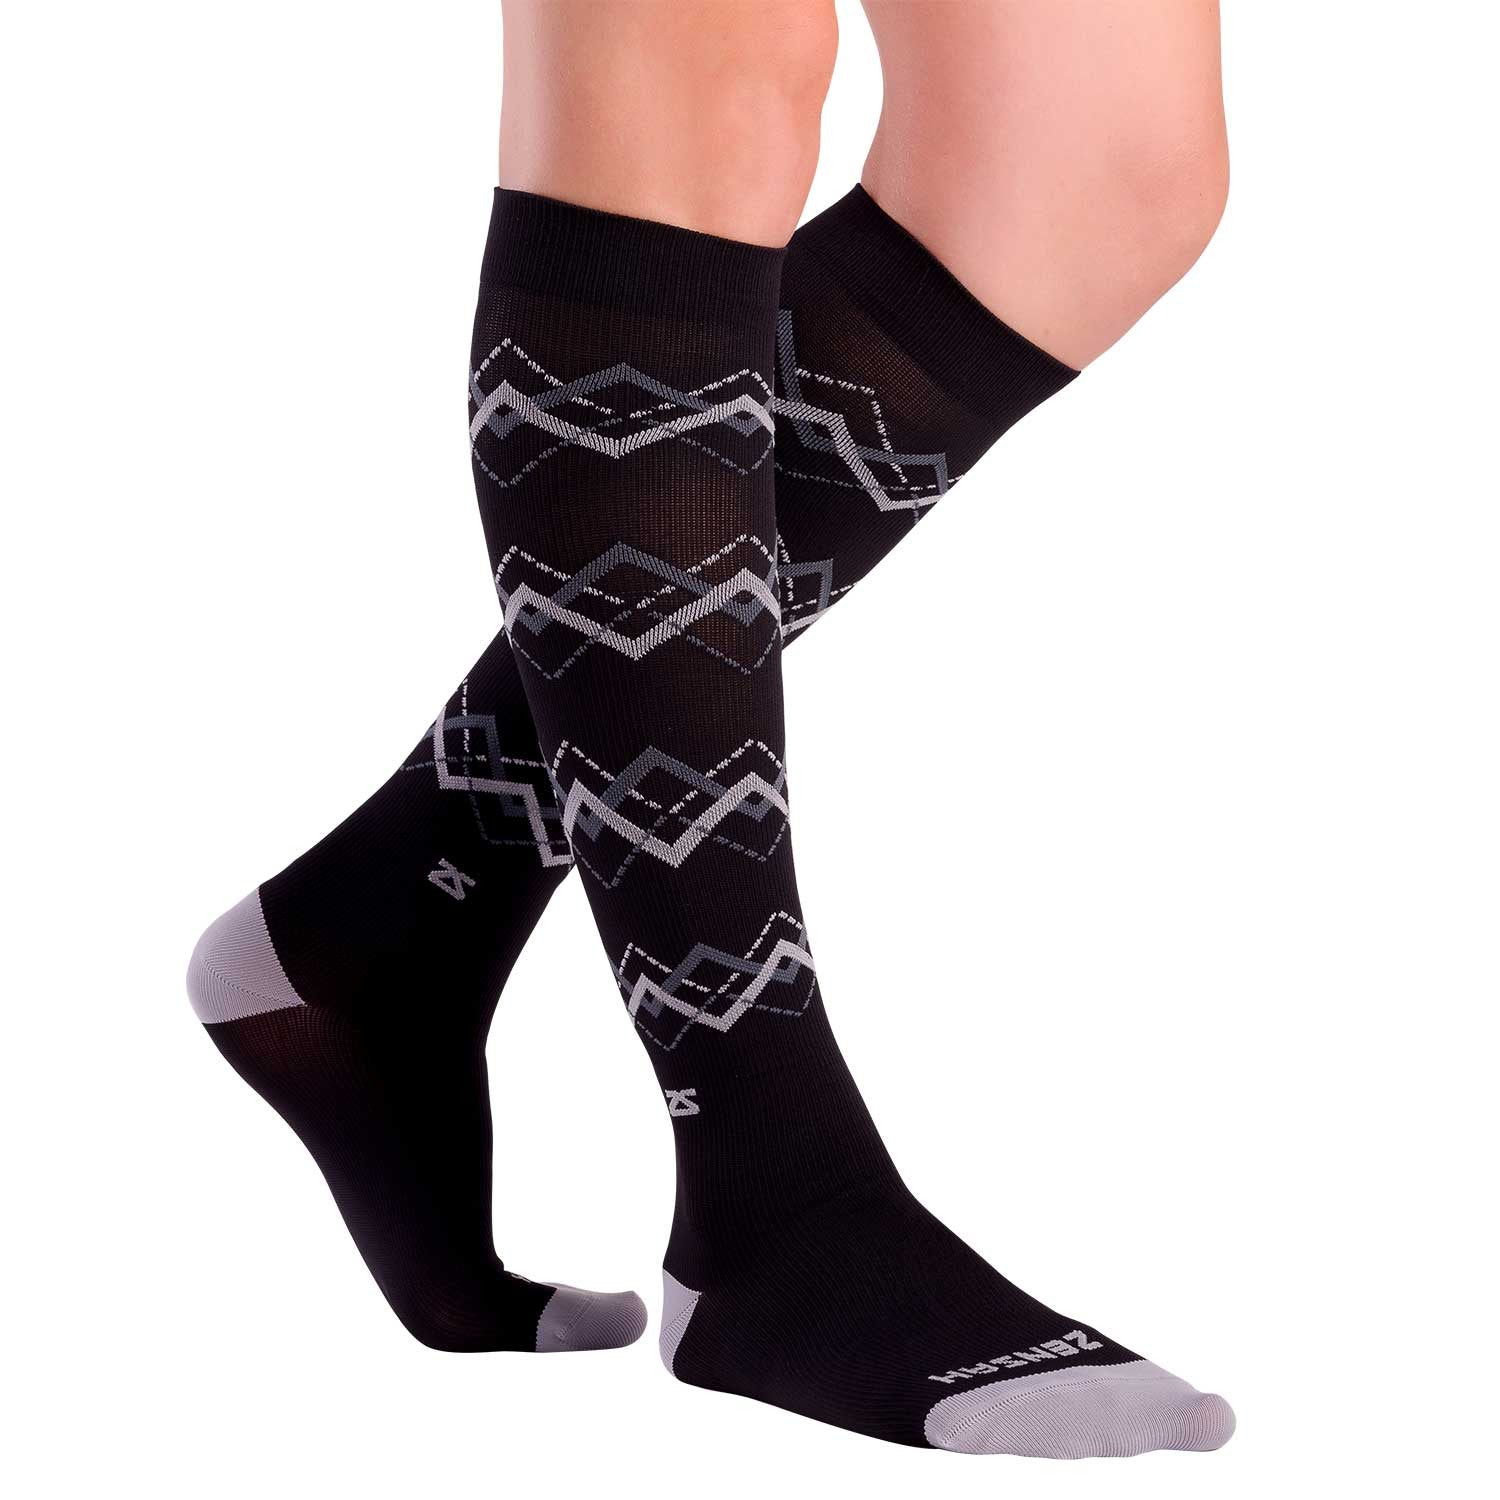 Chevron Argyle Compression Socks